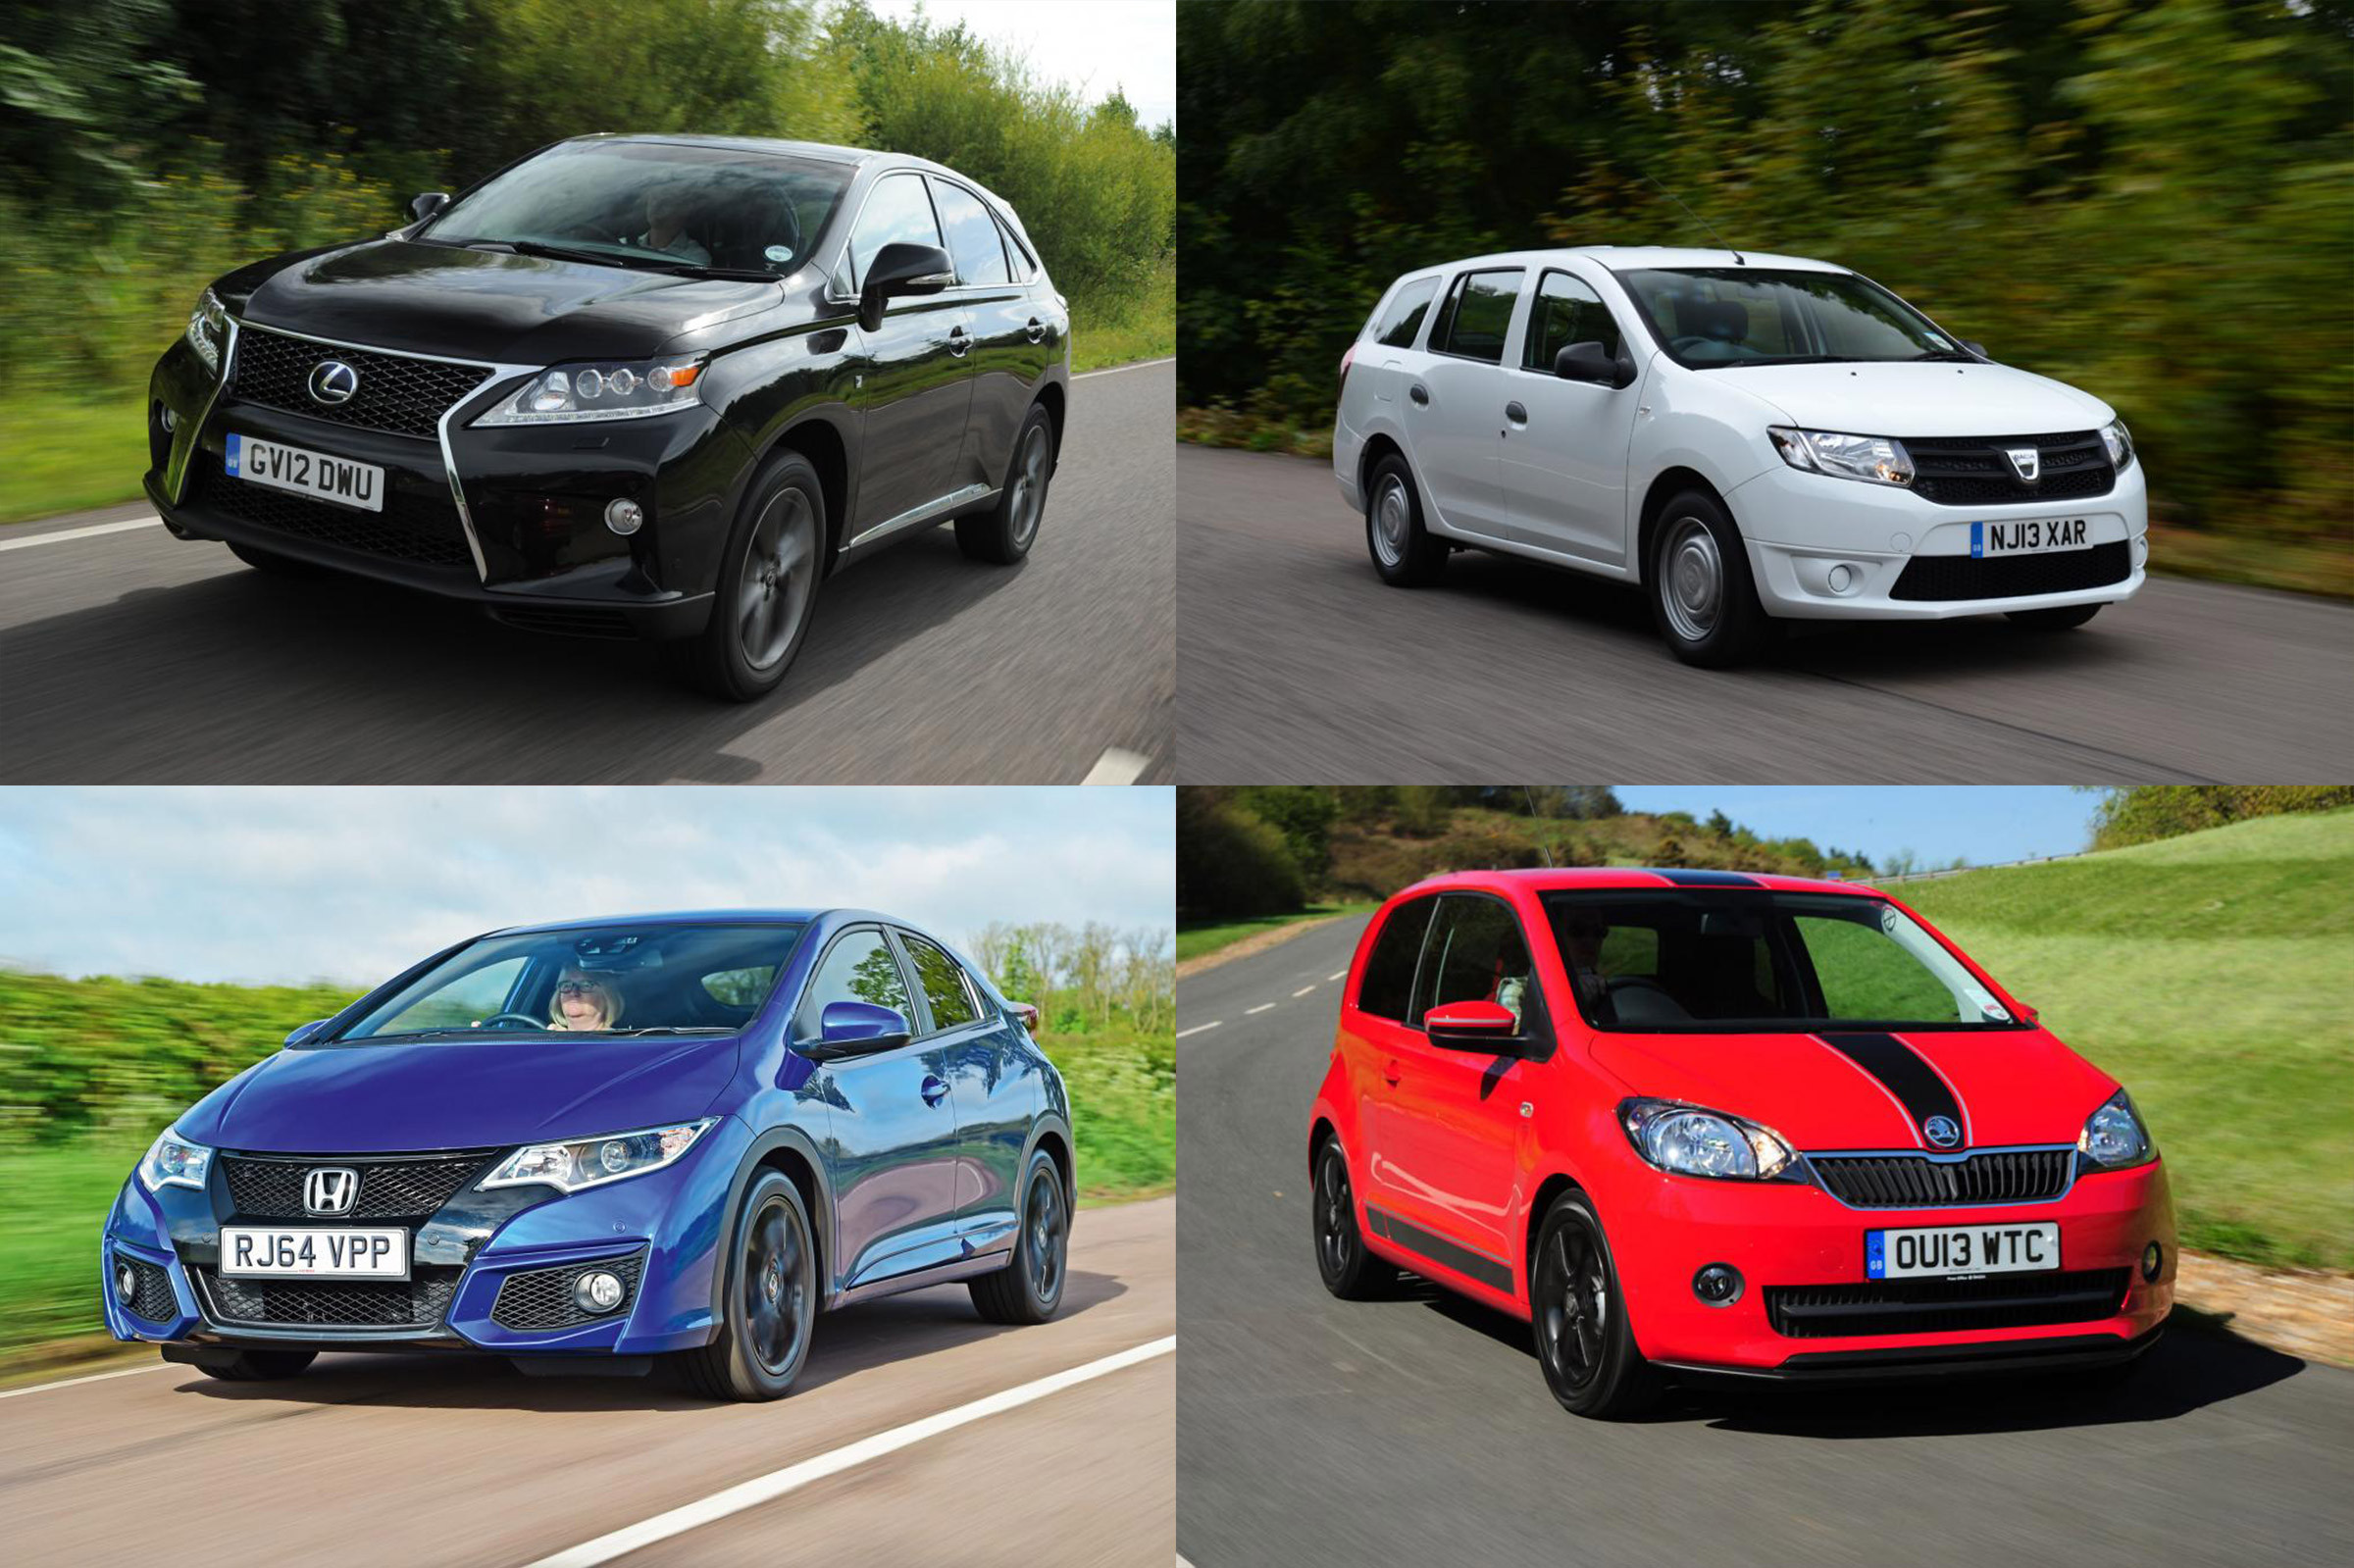 used car dealers in maryland lovely most reliable used cars of used car dealers in maryland